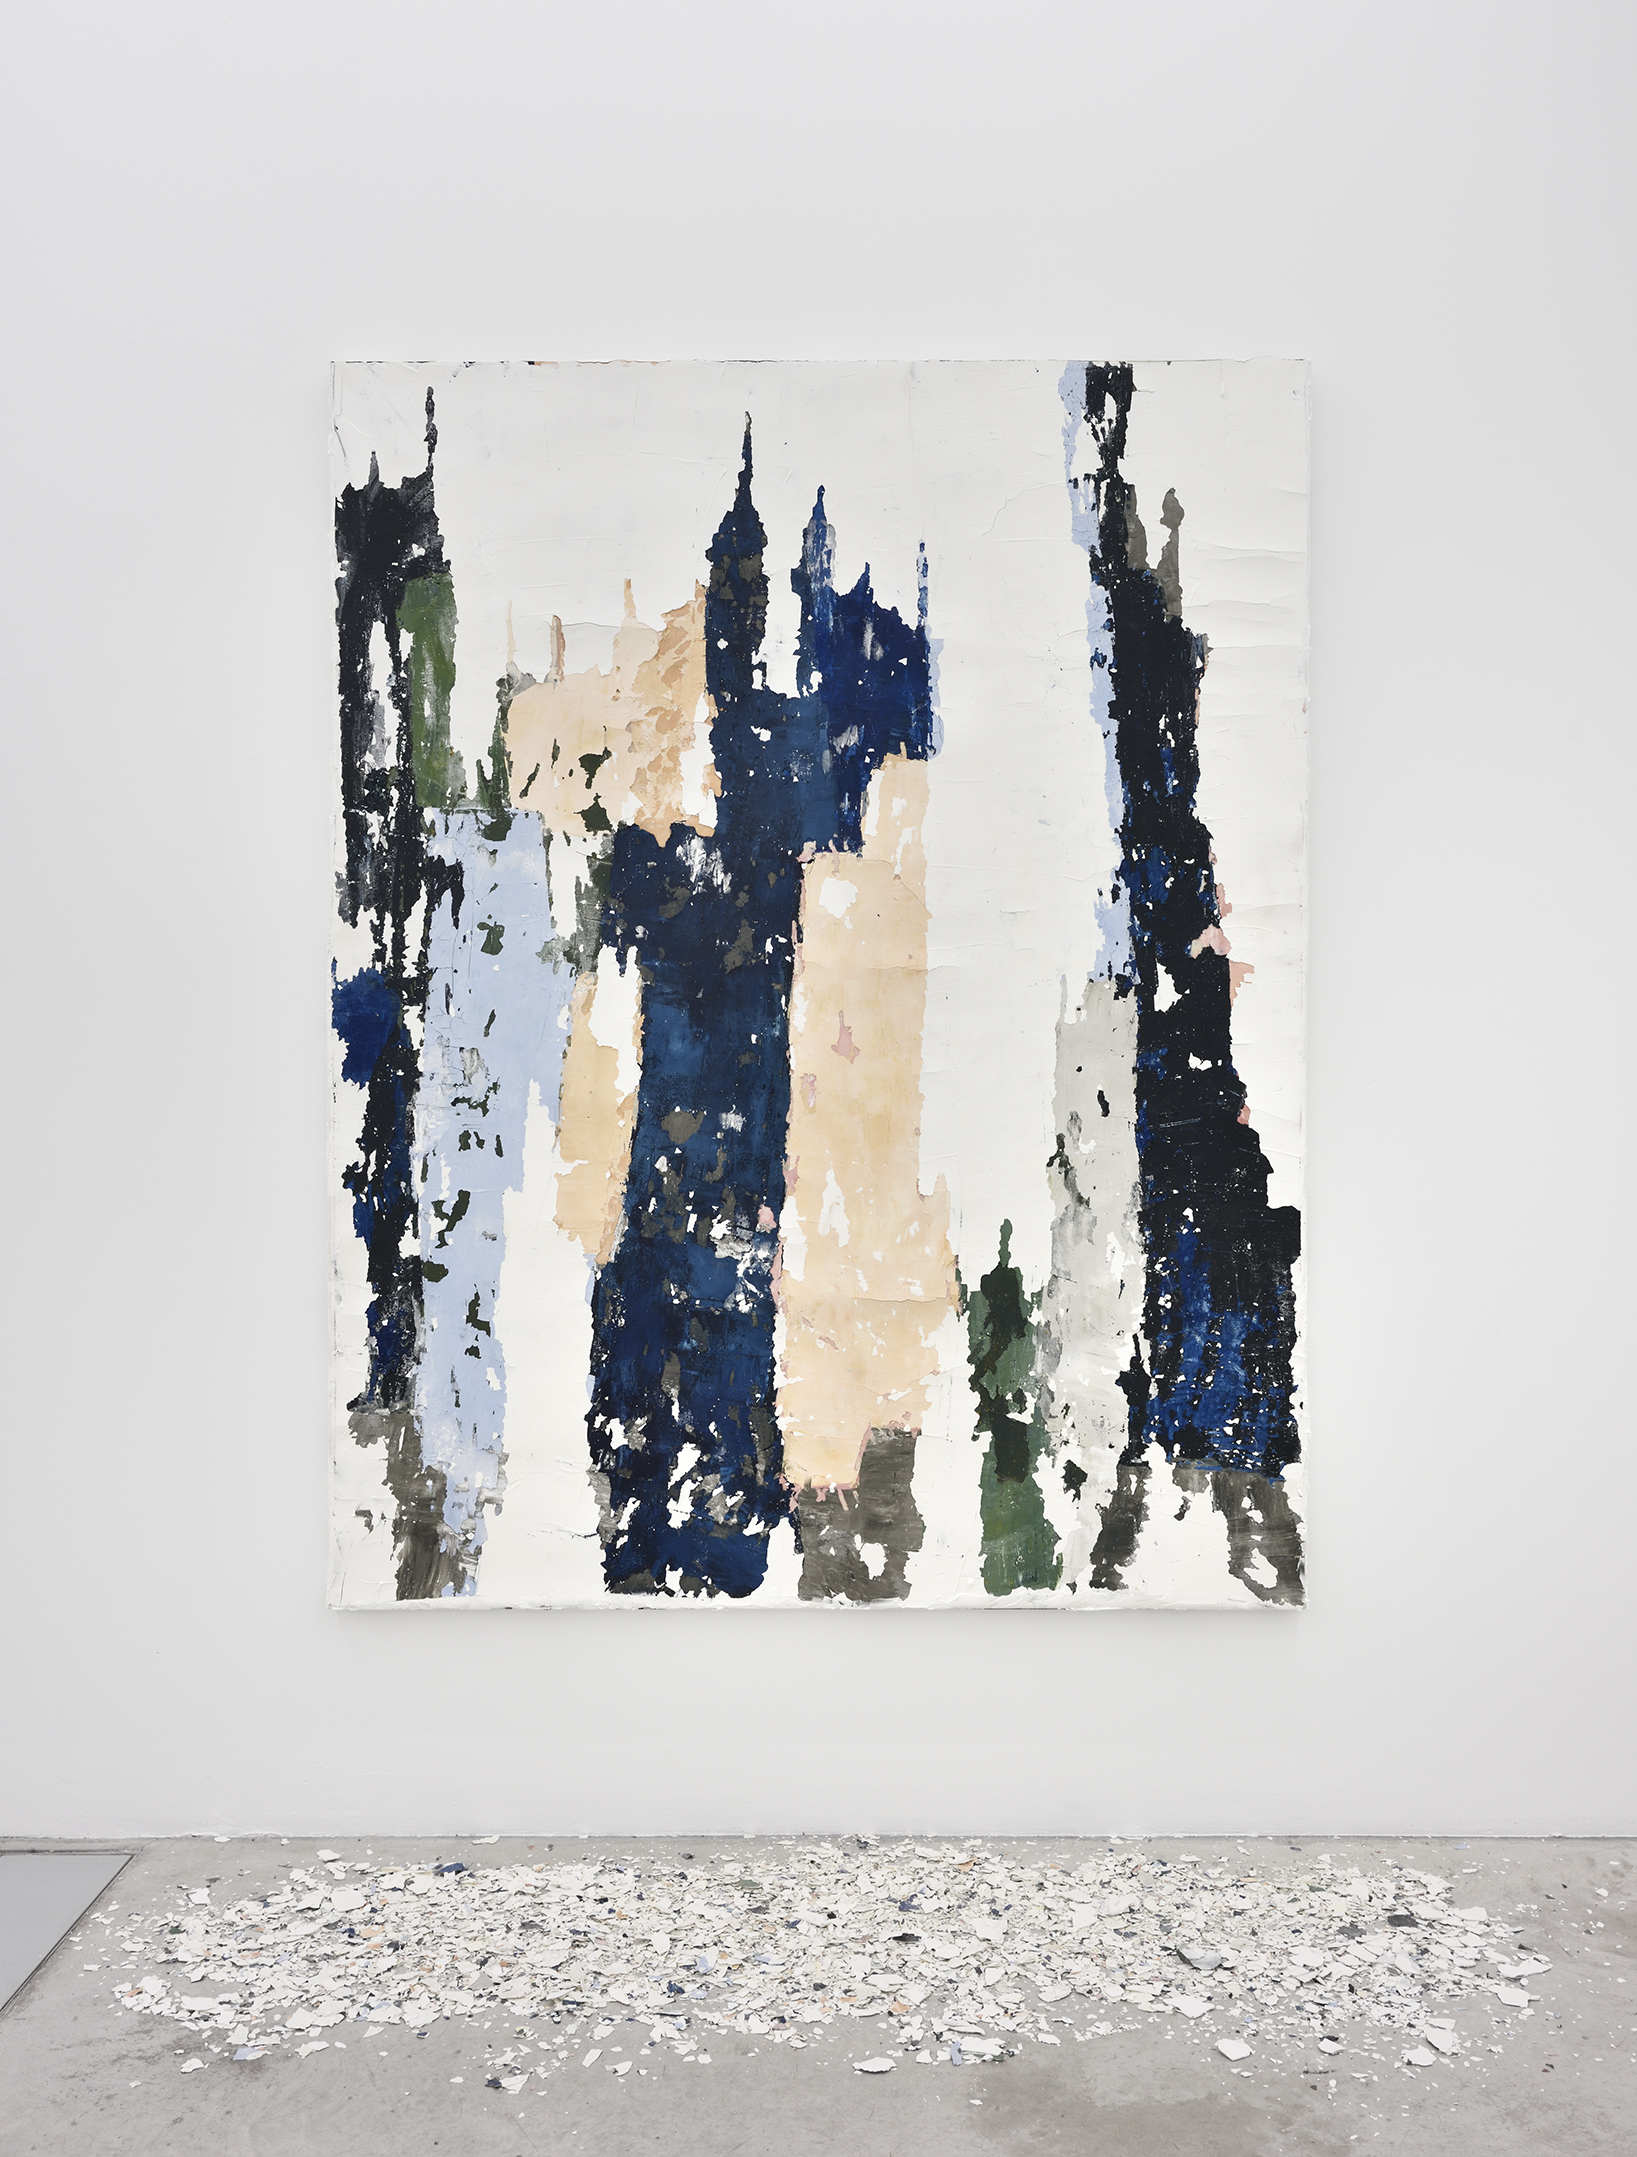 Manoela Medeiros  Ruine , 2018 paint, plaster and fragments 185 x 145 x 3,5 cm